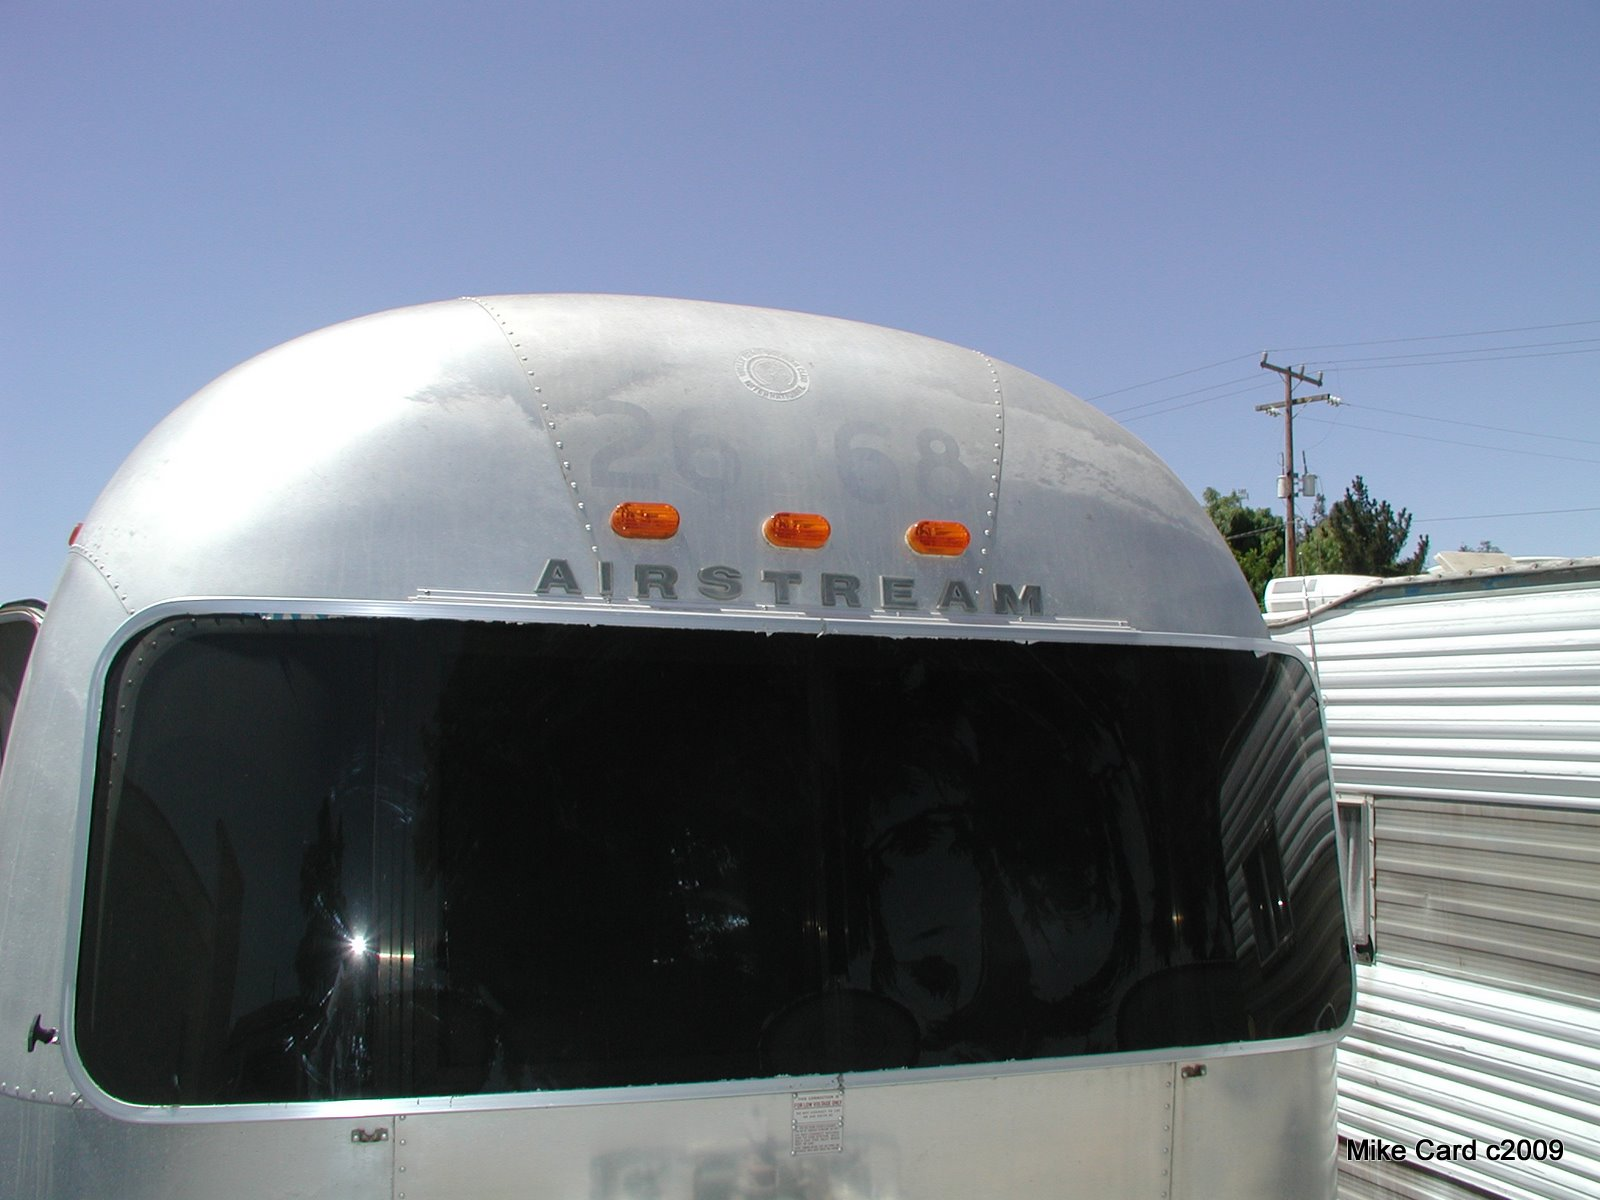 Click image for larger version  Name:AirstreamFront.JPG Views:81 Size:194.3 KB ID:94166